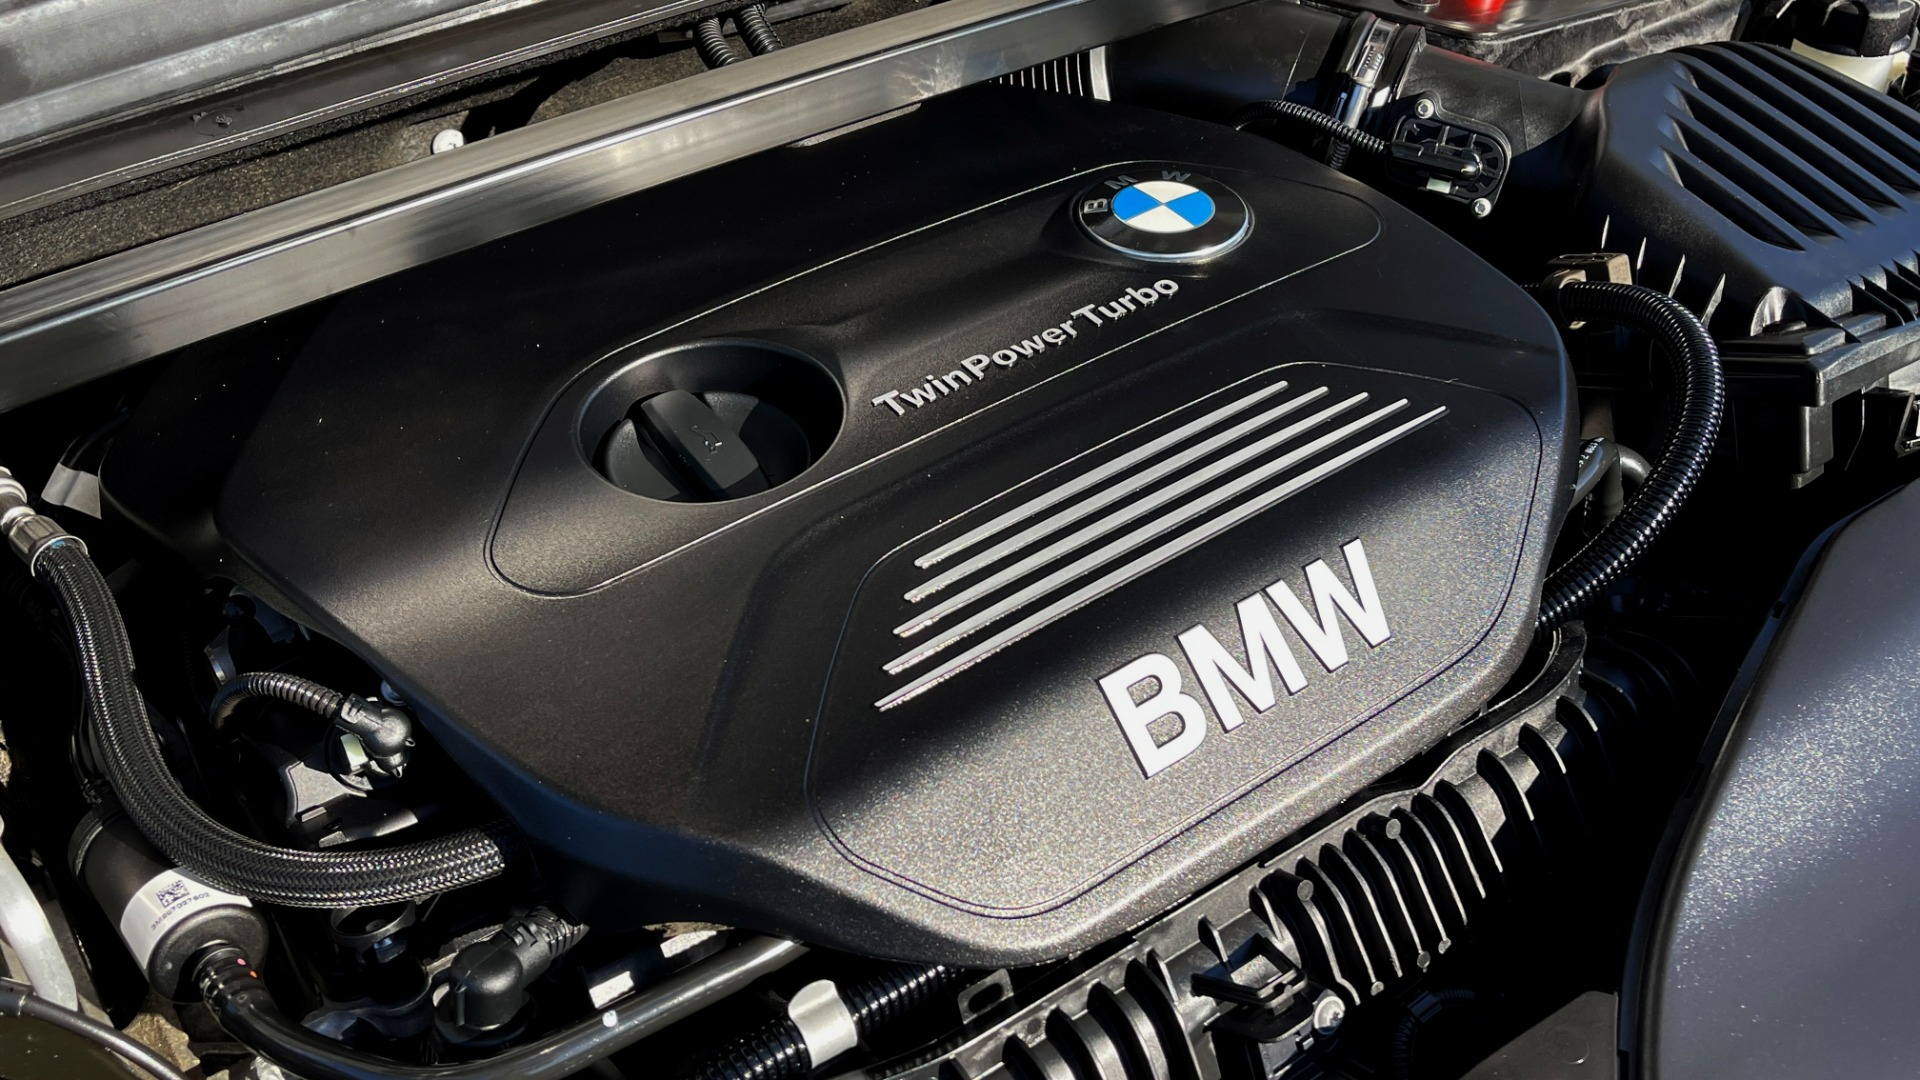 Used 2018 BMW X1 XDRIVE28I / CONV PKG / PANO-ROOF / PARK ASST / REARVIEW for sale $31,995 at Formula Imports in Charlotte NC 28227 9